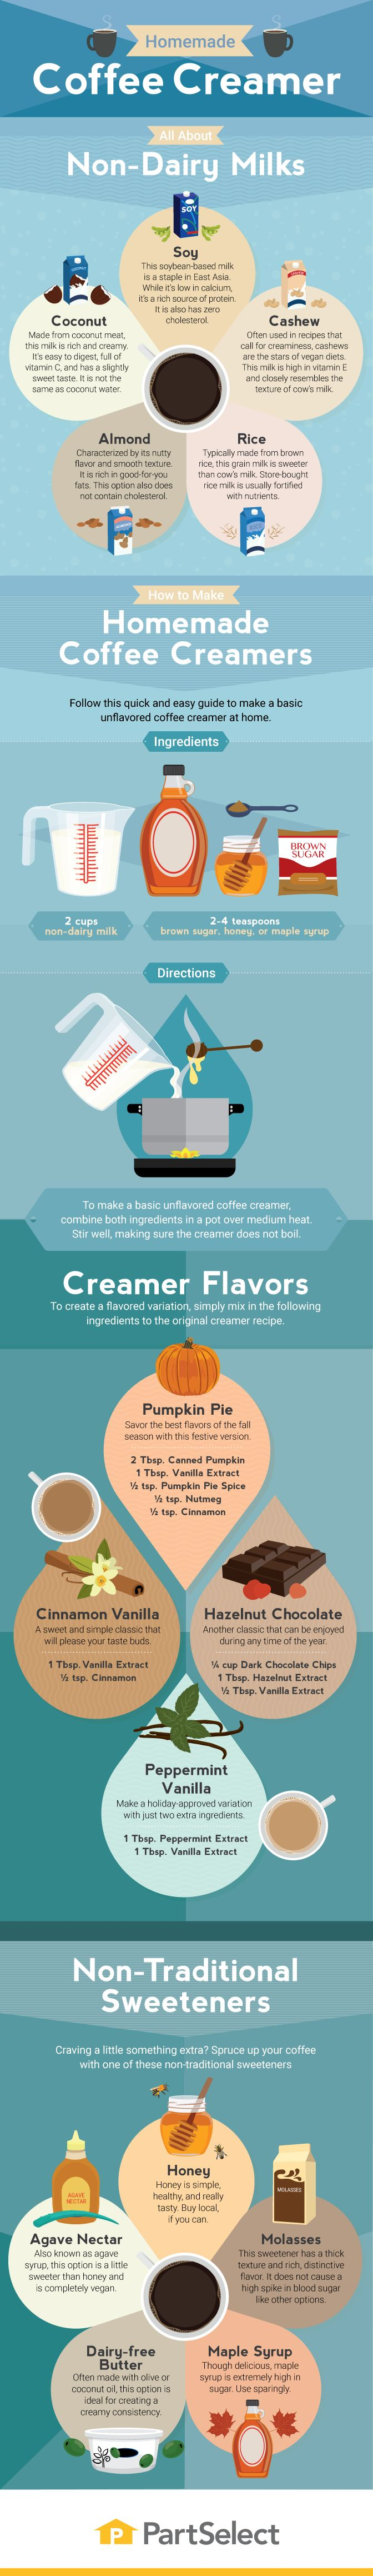 Homemade Coffee Creamer #Infographic #Coffee #Food